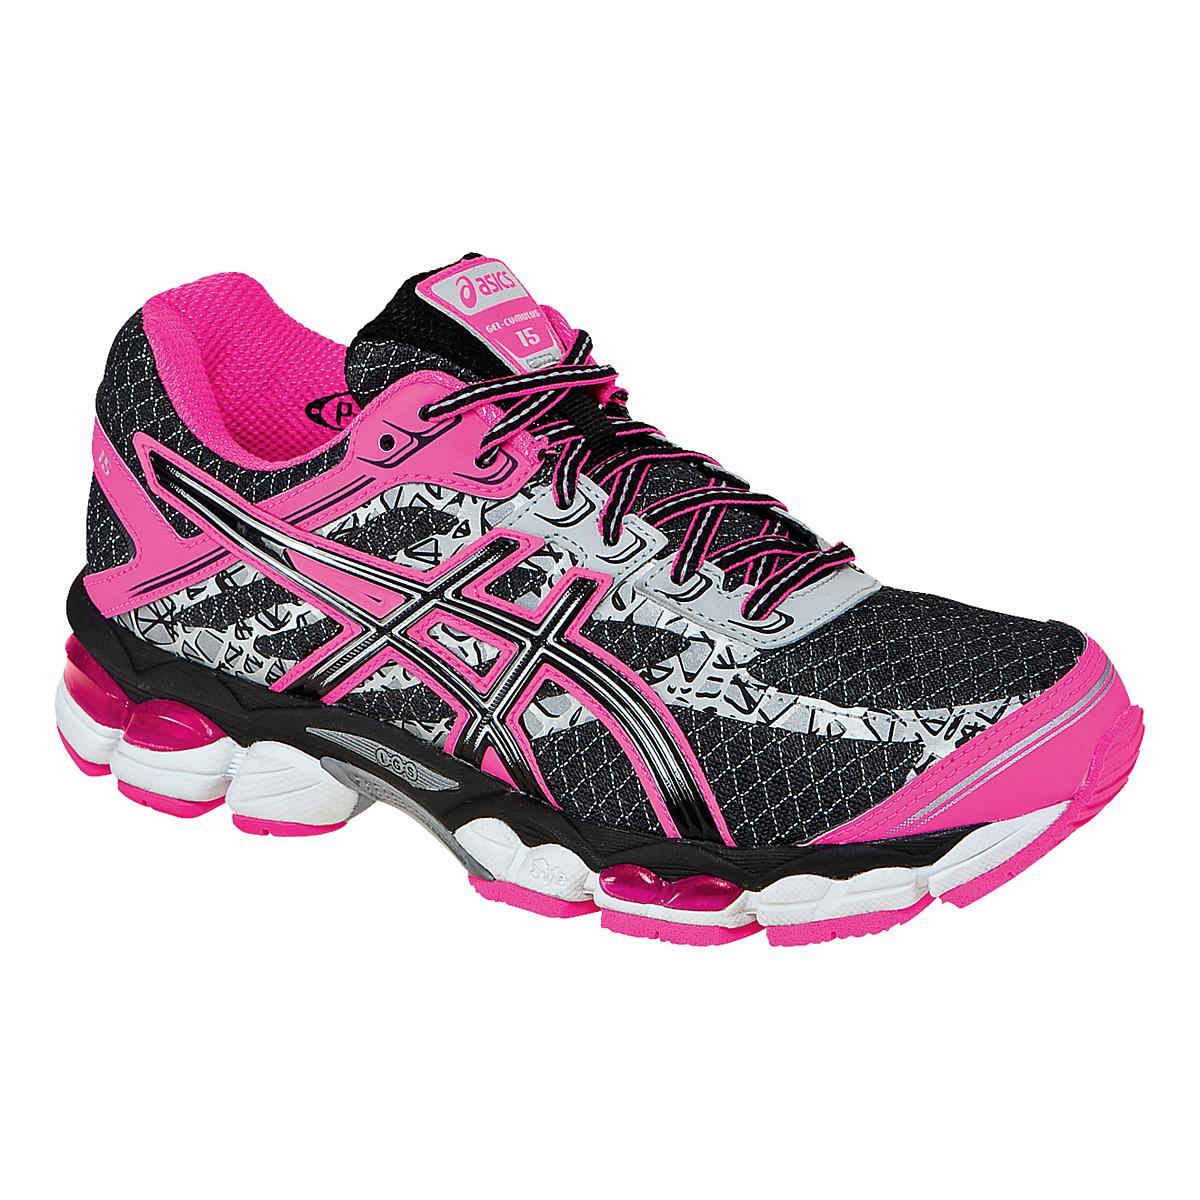 womens asics gel cumulus 15 lite show running shoe at road runner sports. Black Bedroom Furniture Sets. Home Design Ideas